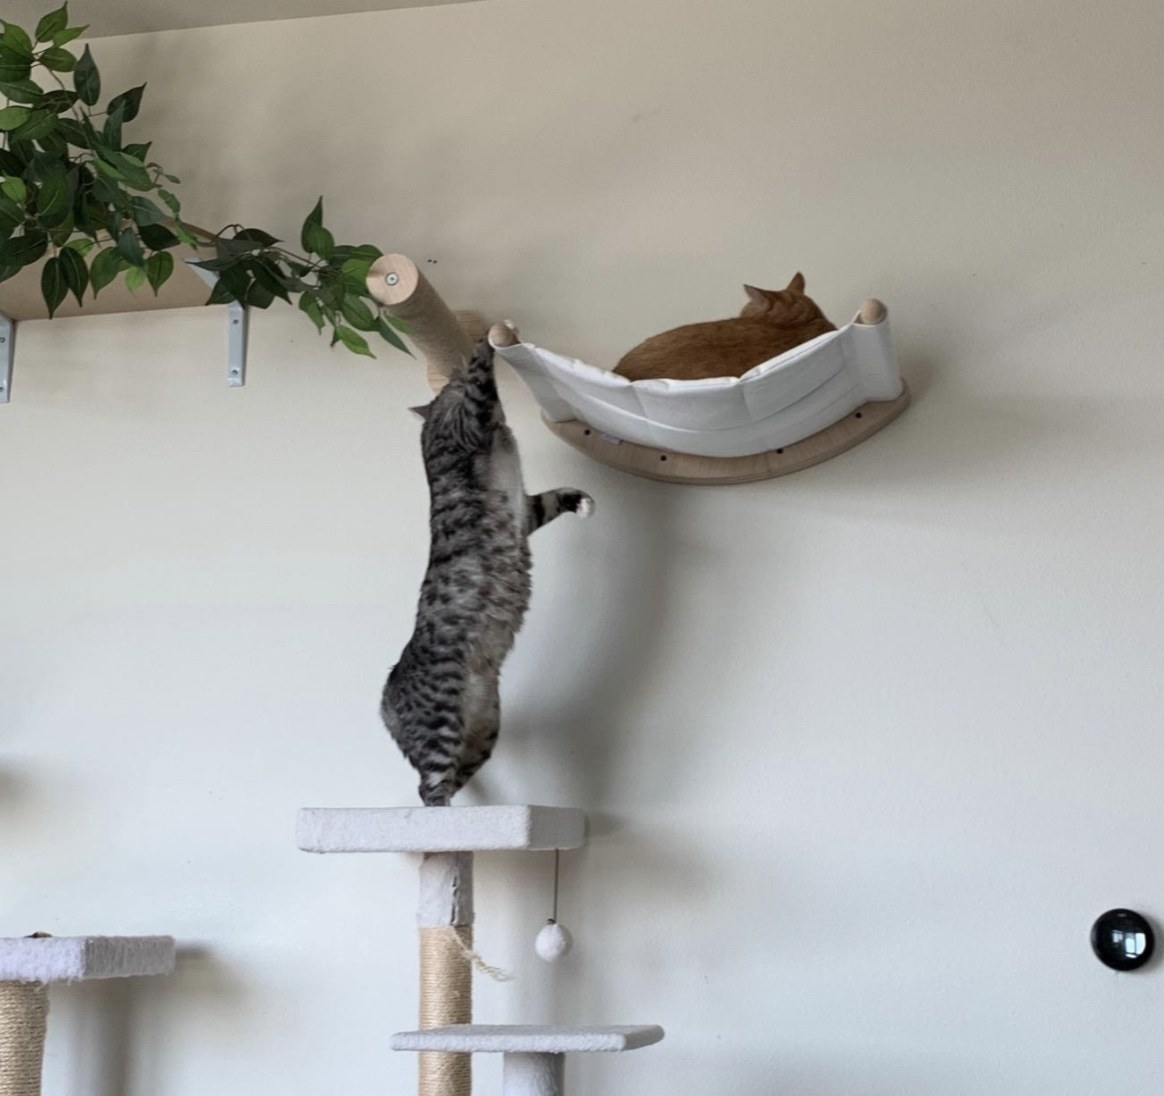 A cat playing with another cat on a mounted hammock